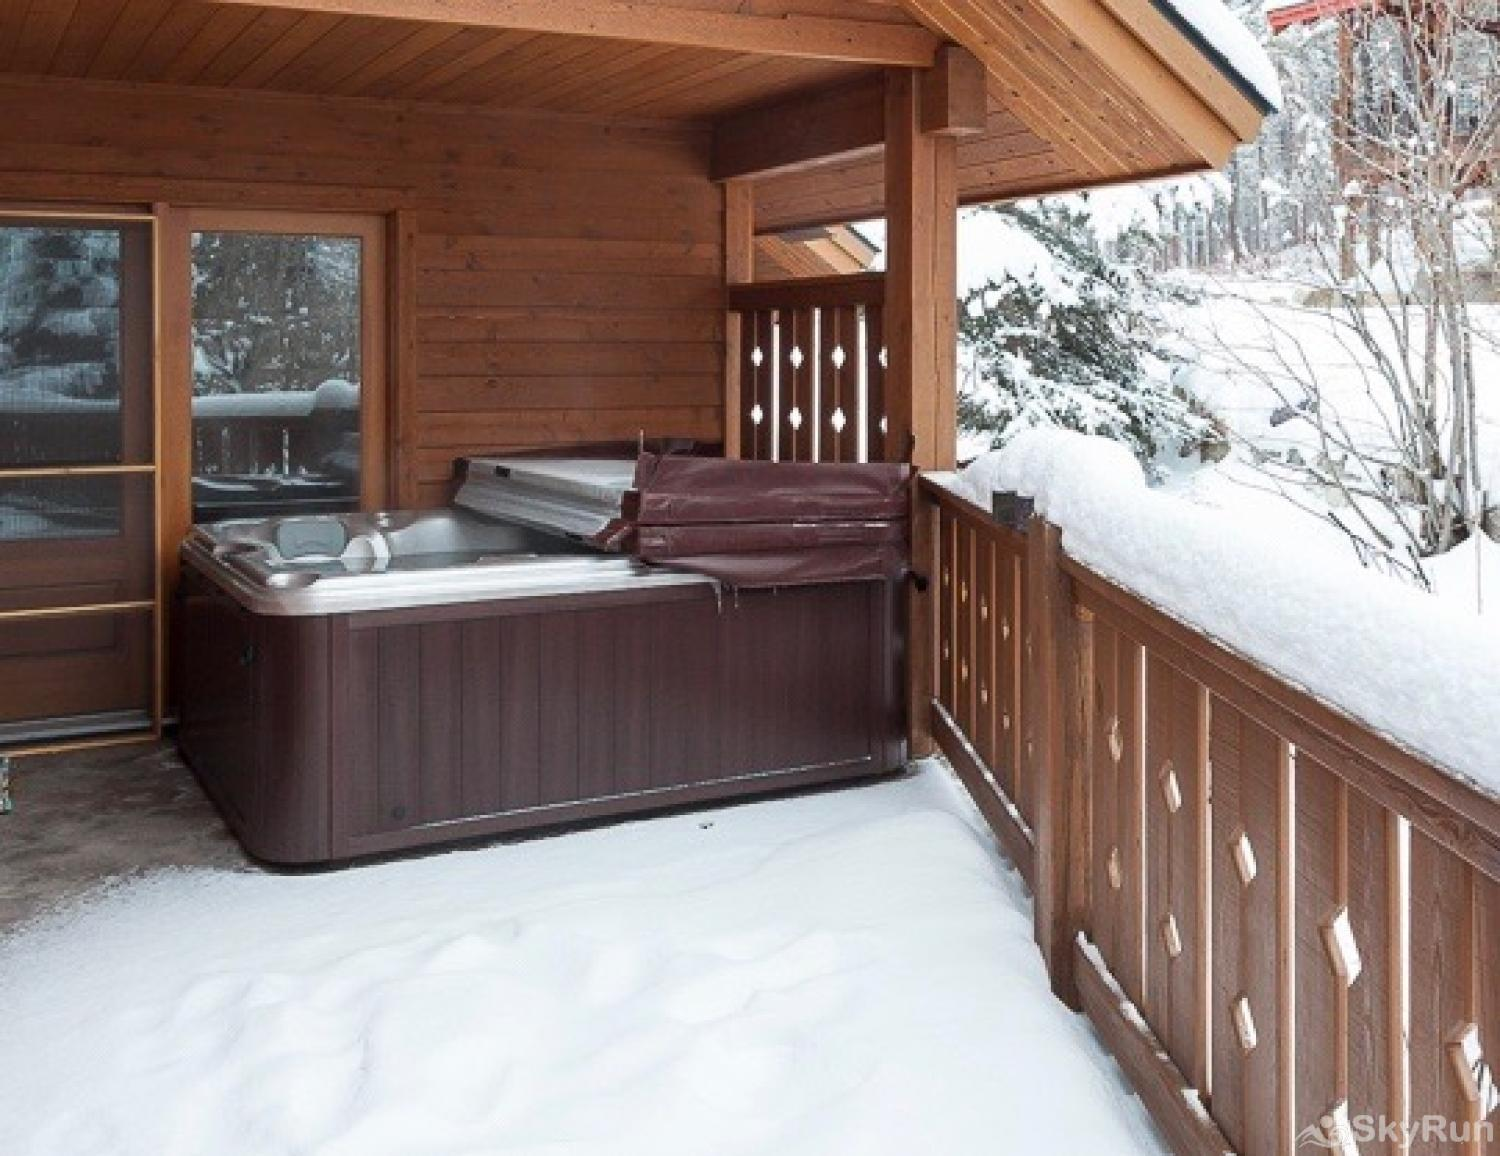 Highland Huckleberry Lodge Don't forget the hot tub! Relax and enjoy the sights and the crisp Montana air